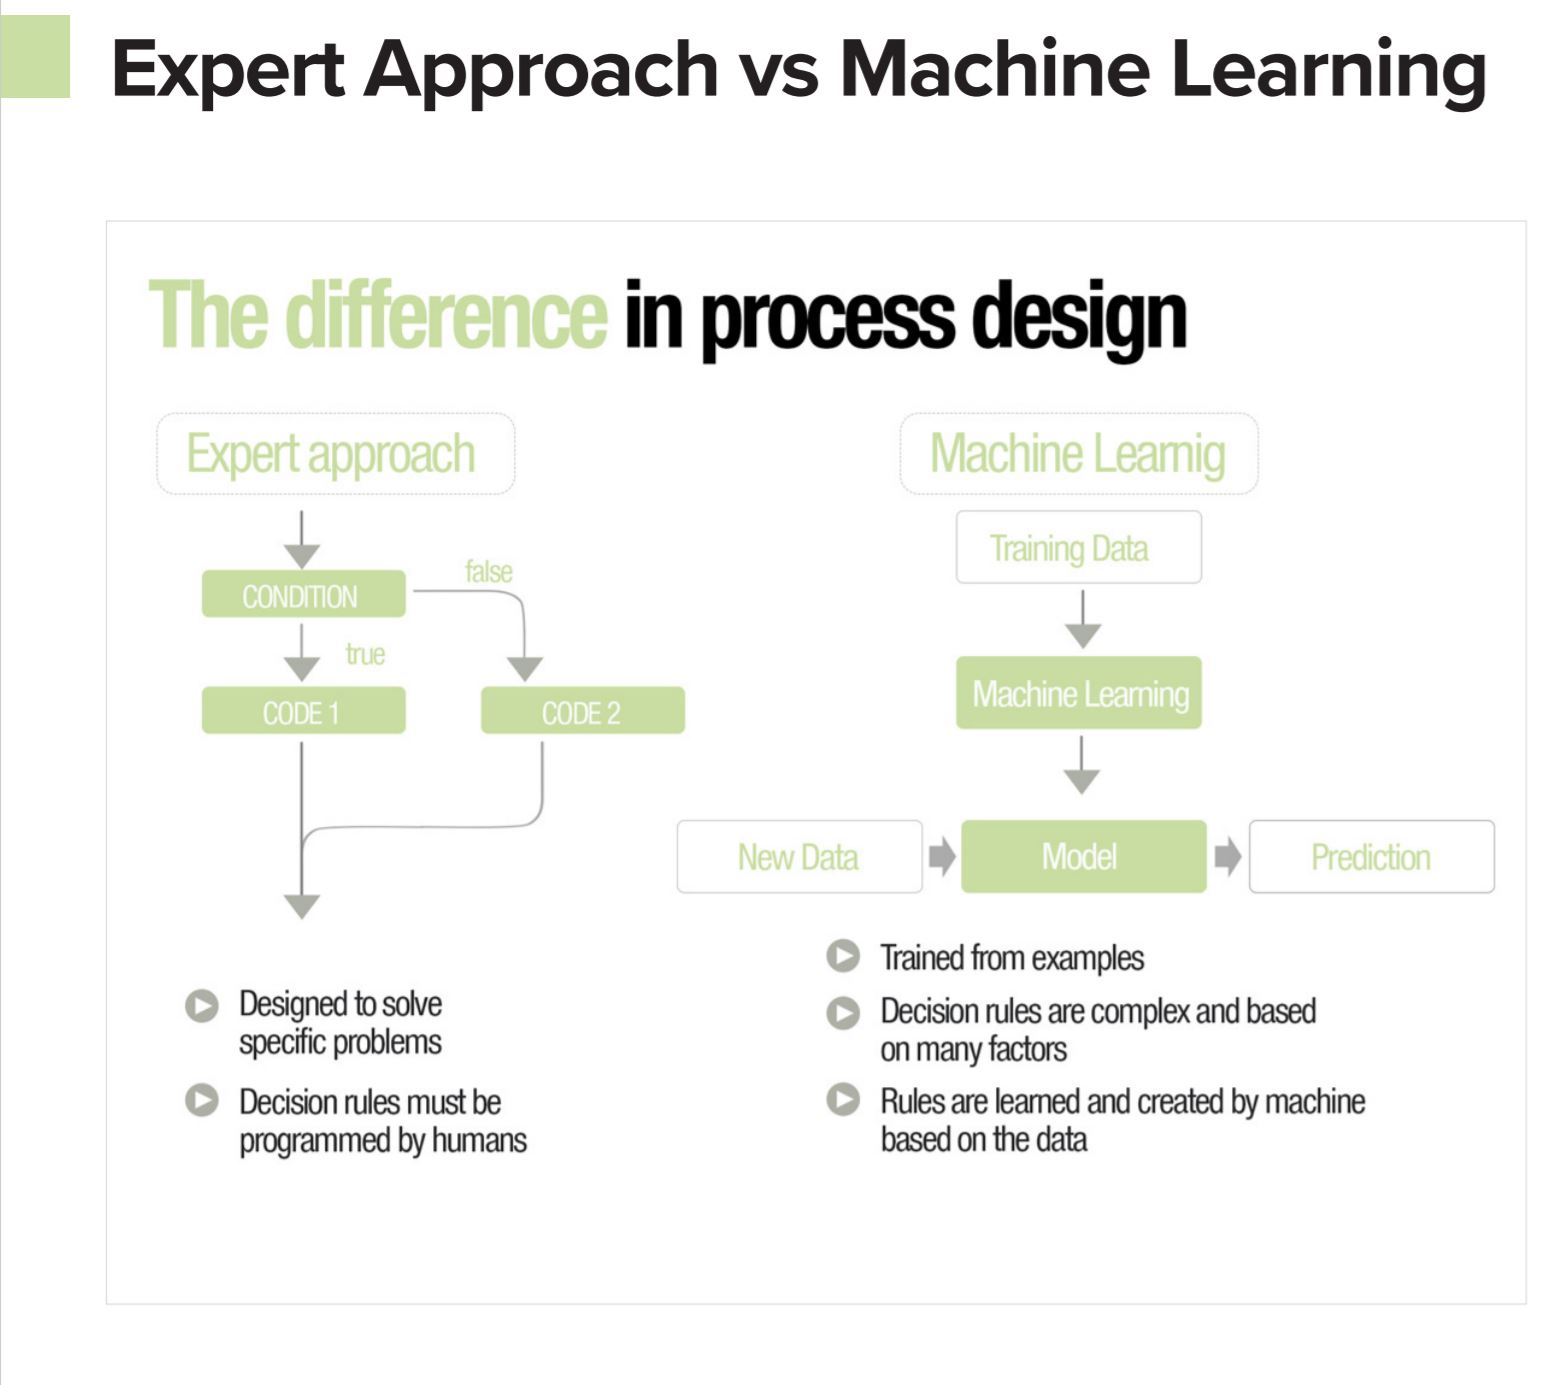 expertapproach vs machine learning in marketing automation